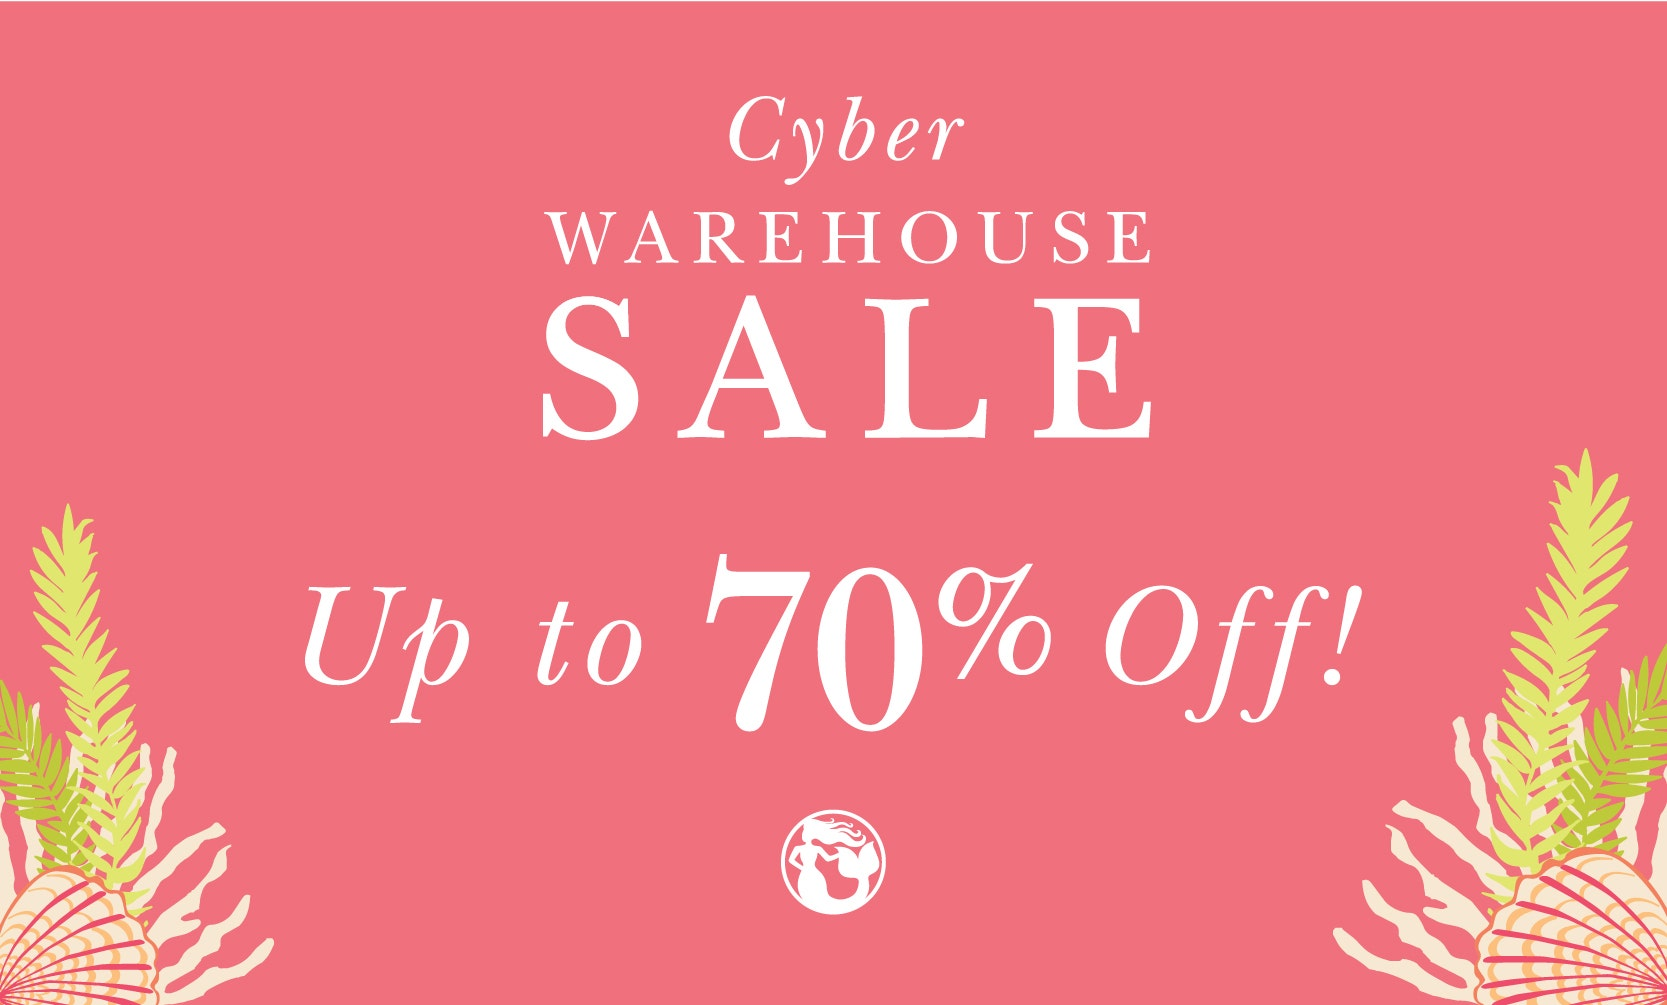 Cyber Warehouse Sale